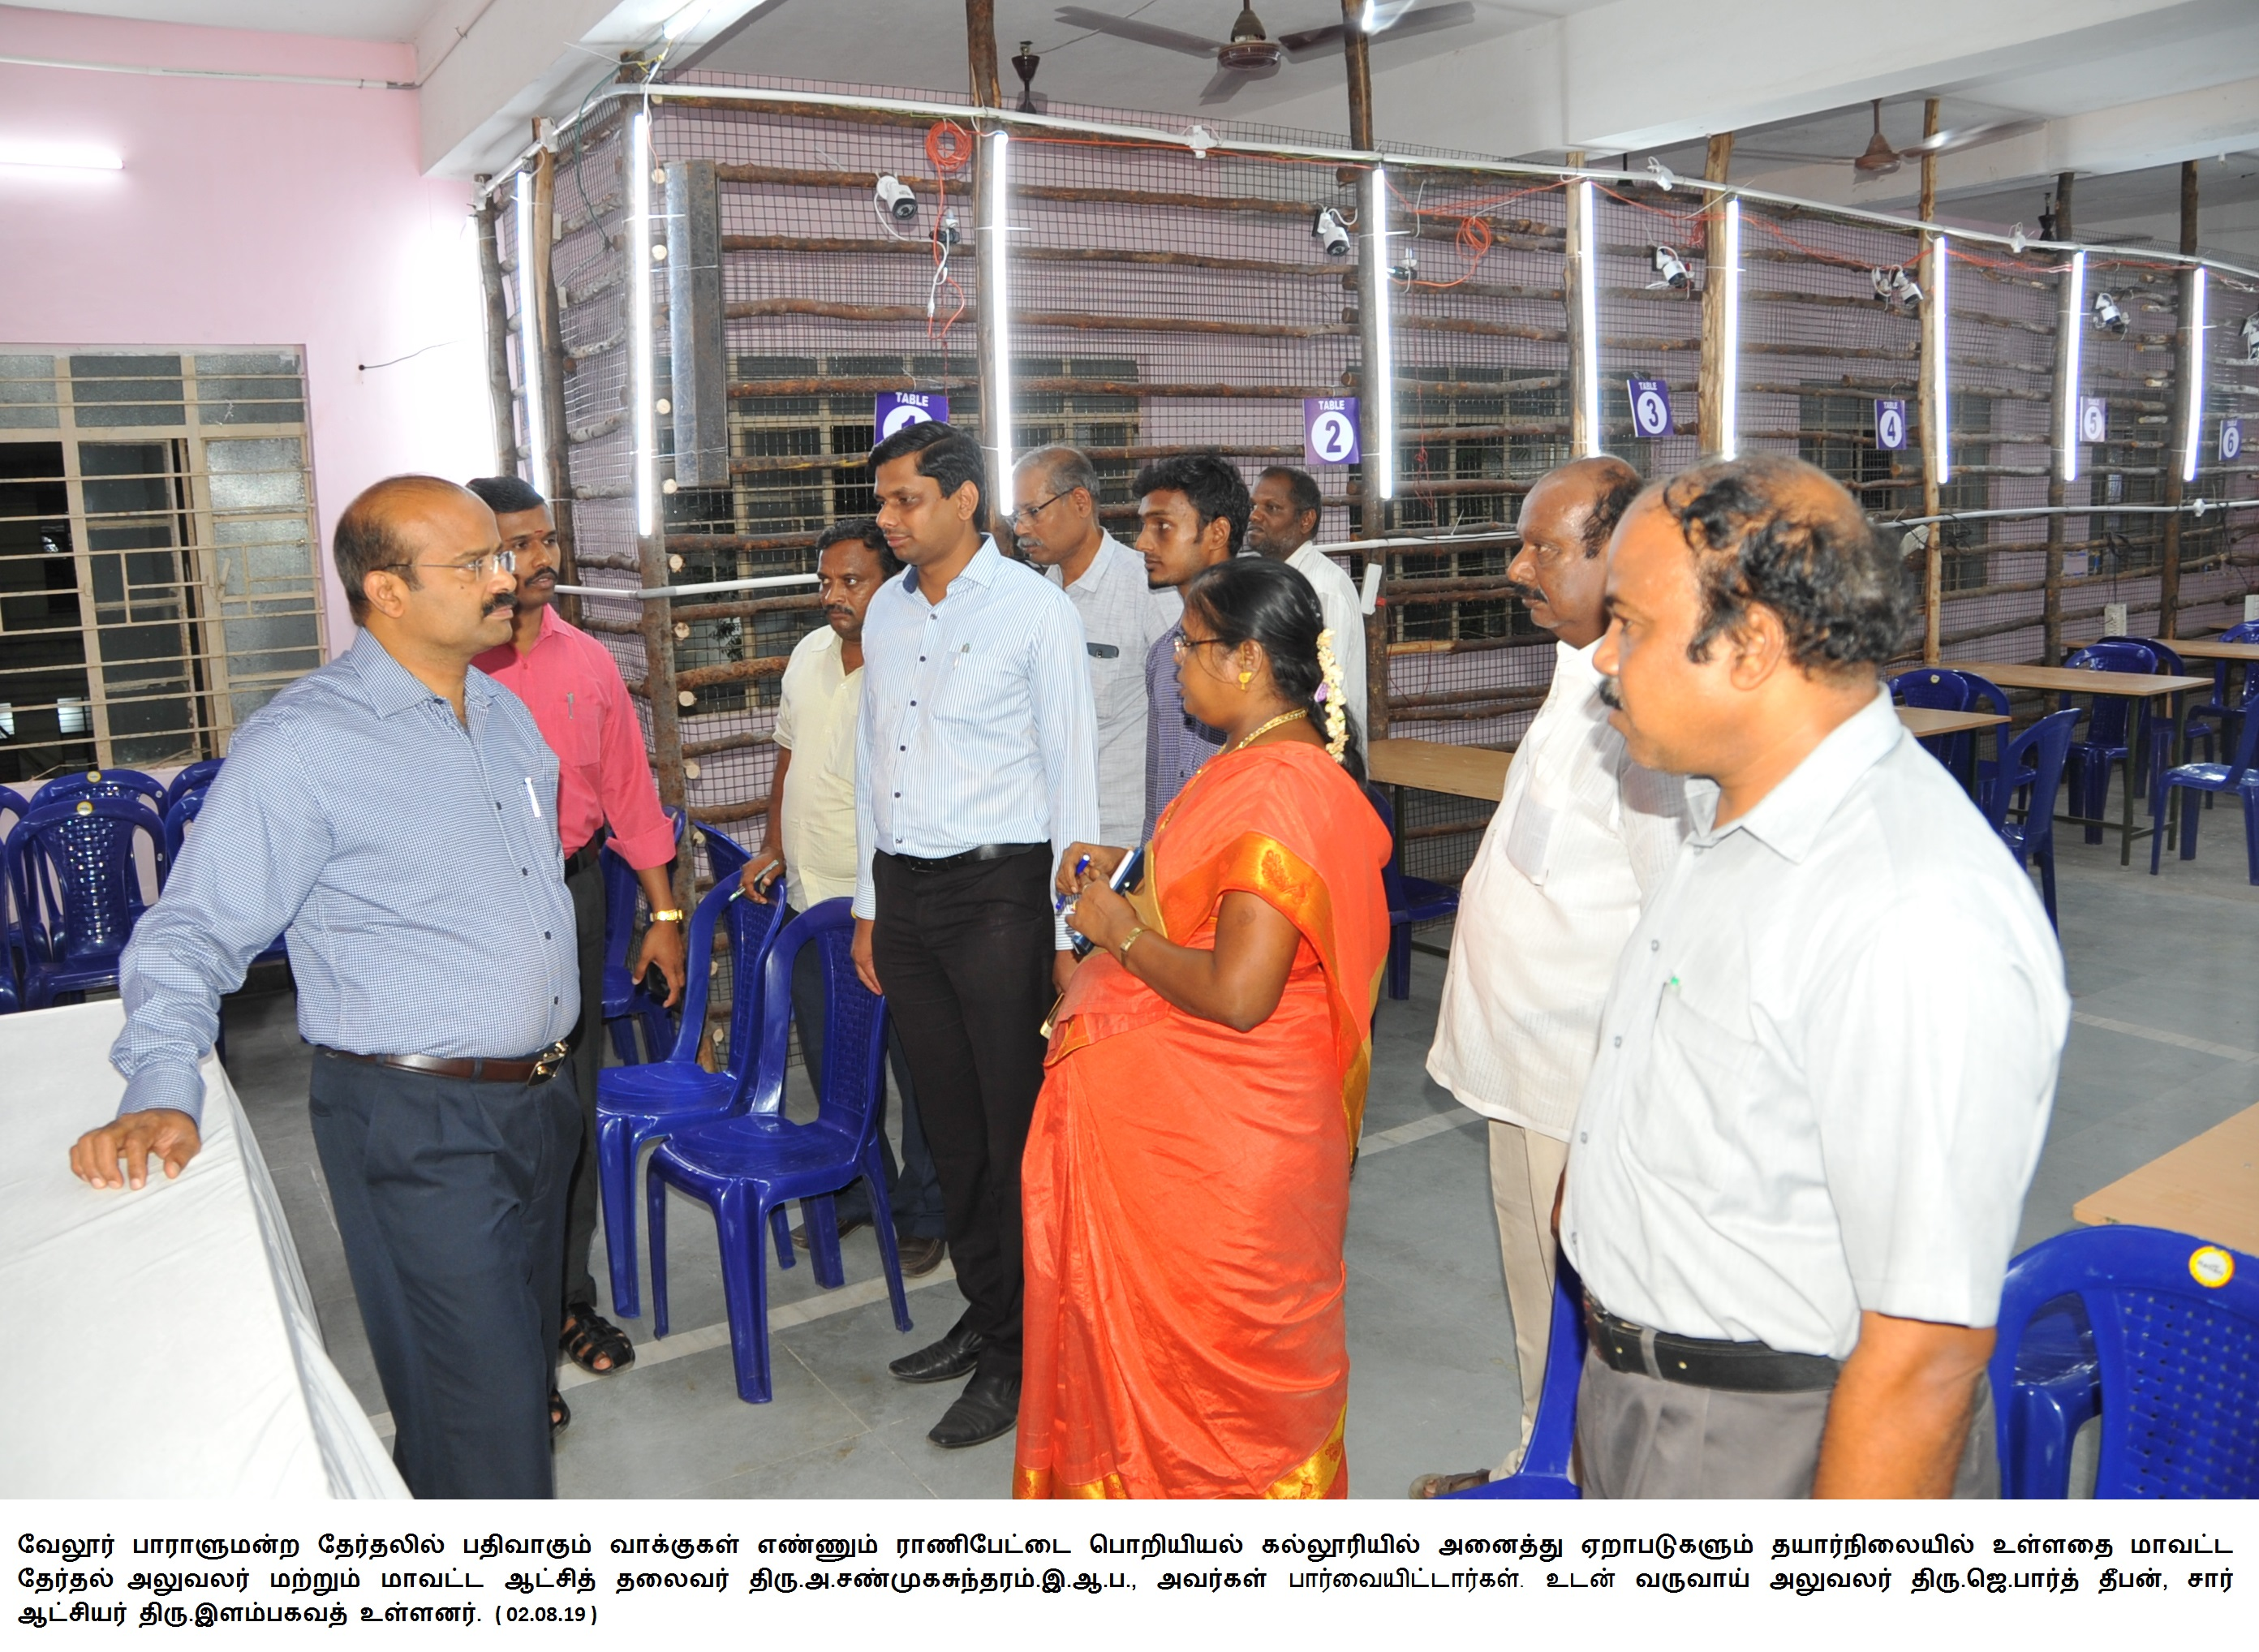 Counting Center Inspection 02/08/2019